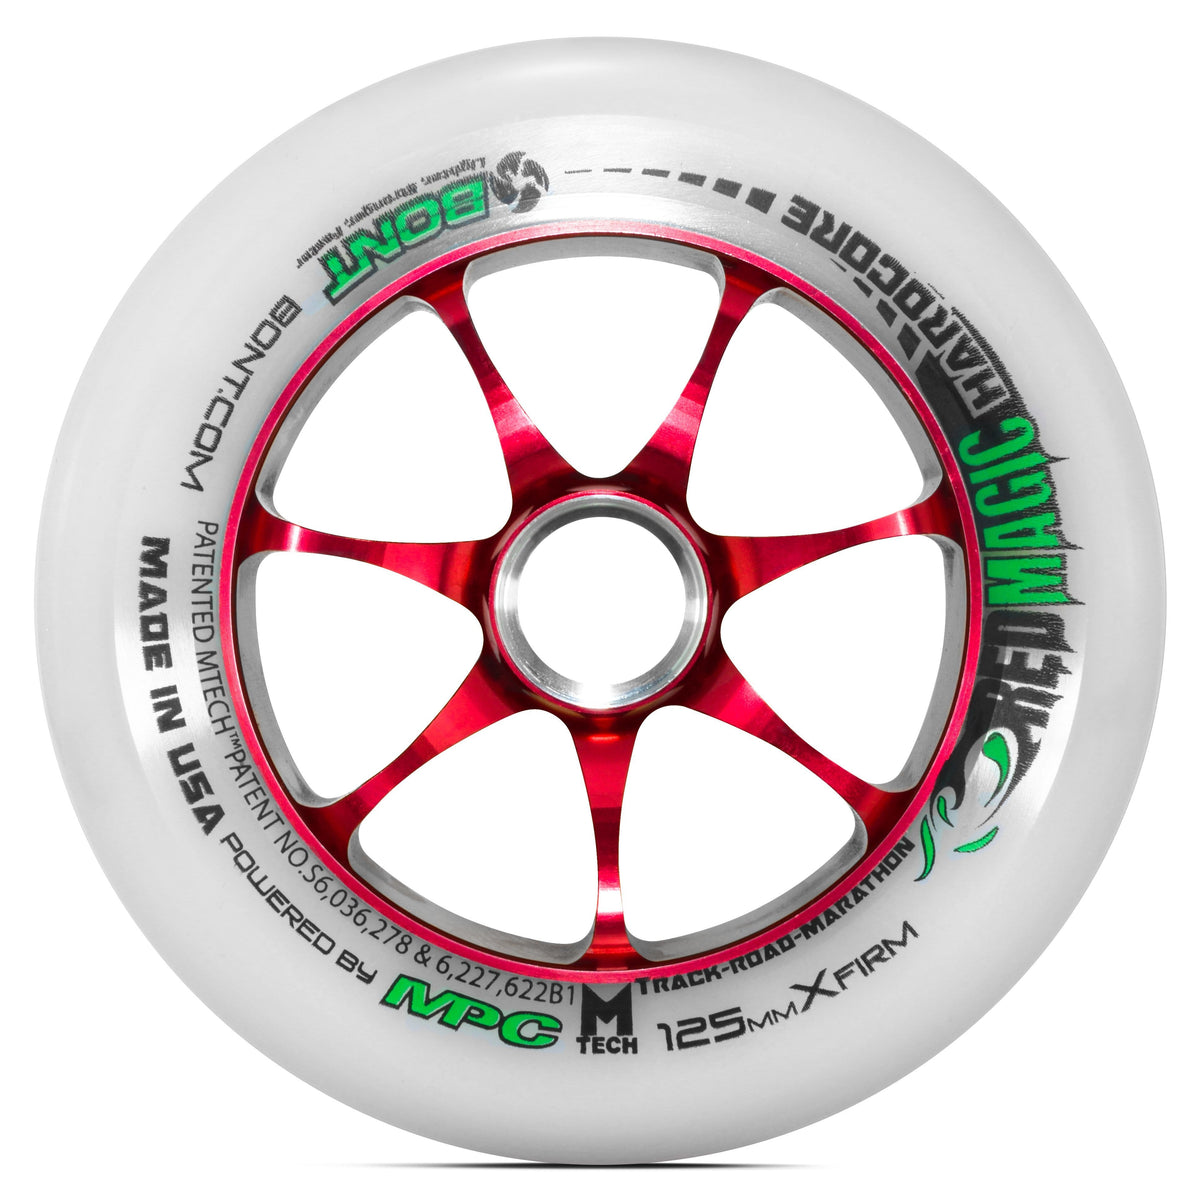 INLINE, QUAD AND ROLLER DERBY WHEELS